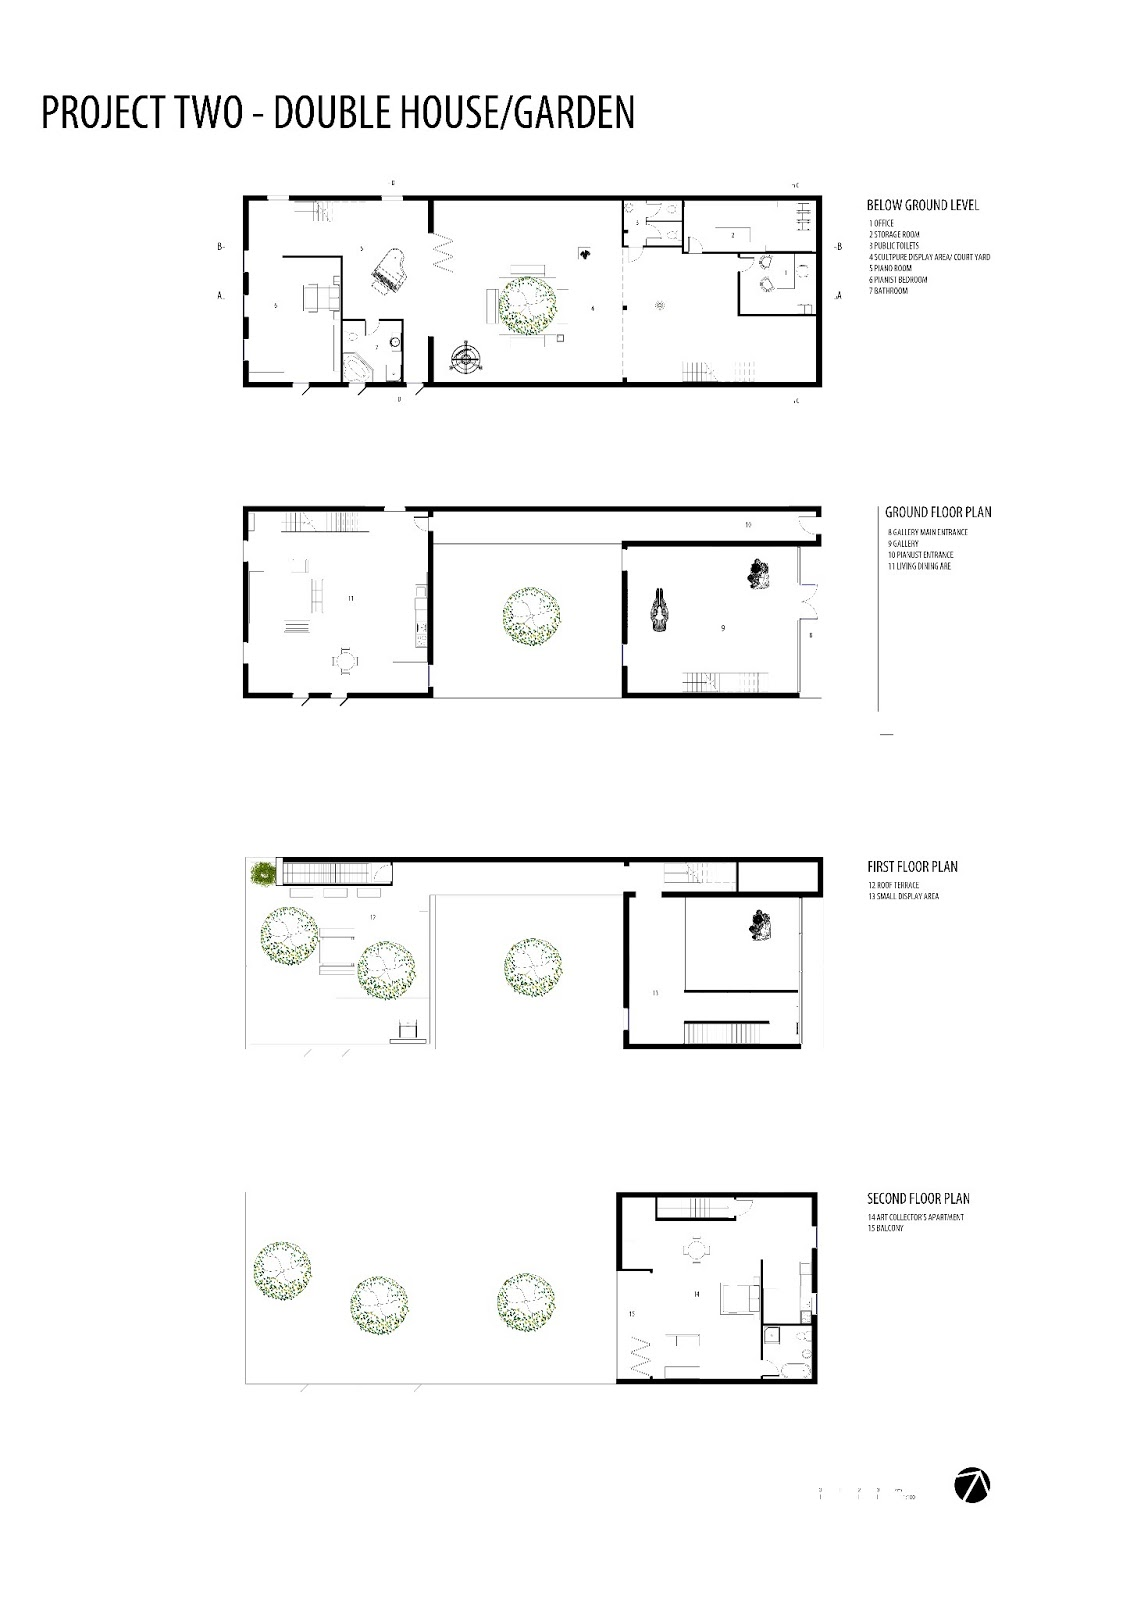 The Double House Is Divided Into 3 Equal Squares Working Together  Concurrently In A Seemingly Mirrored Approach Both Above And Below Ground,  ...